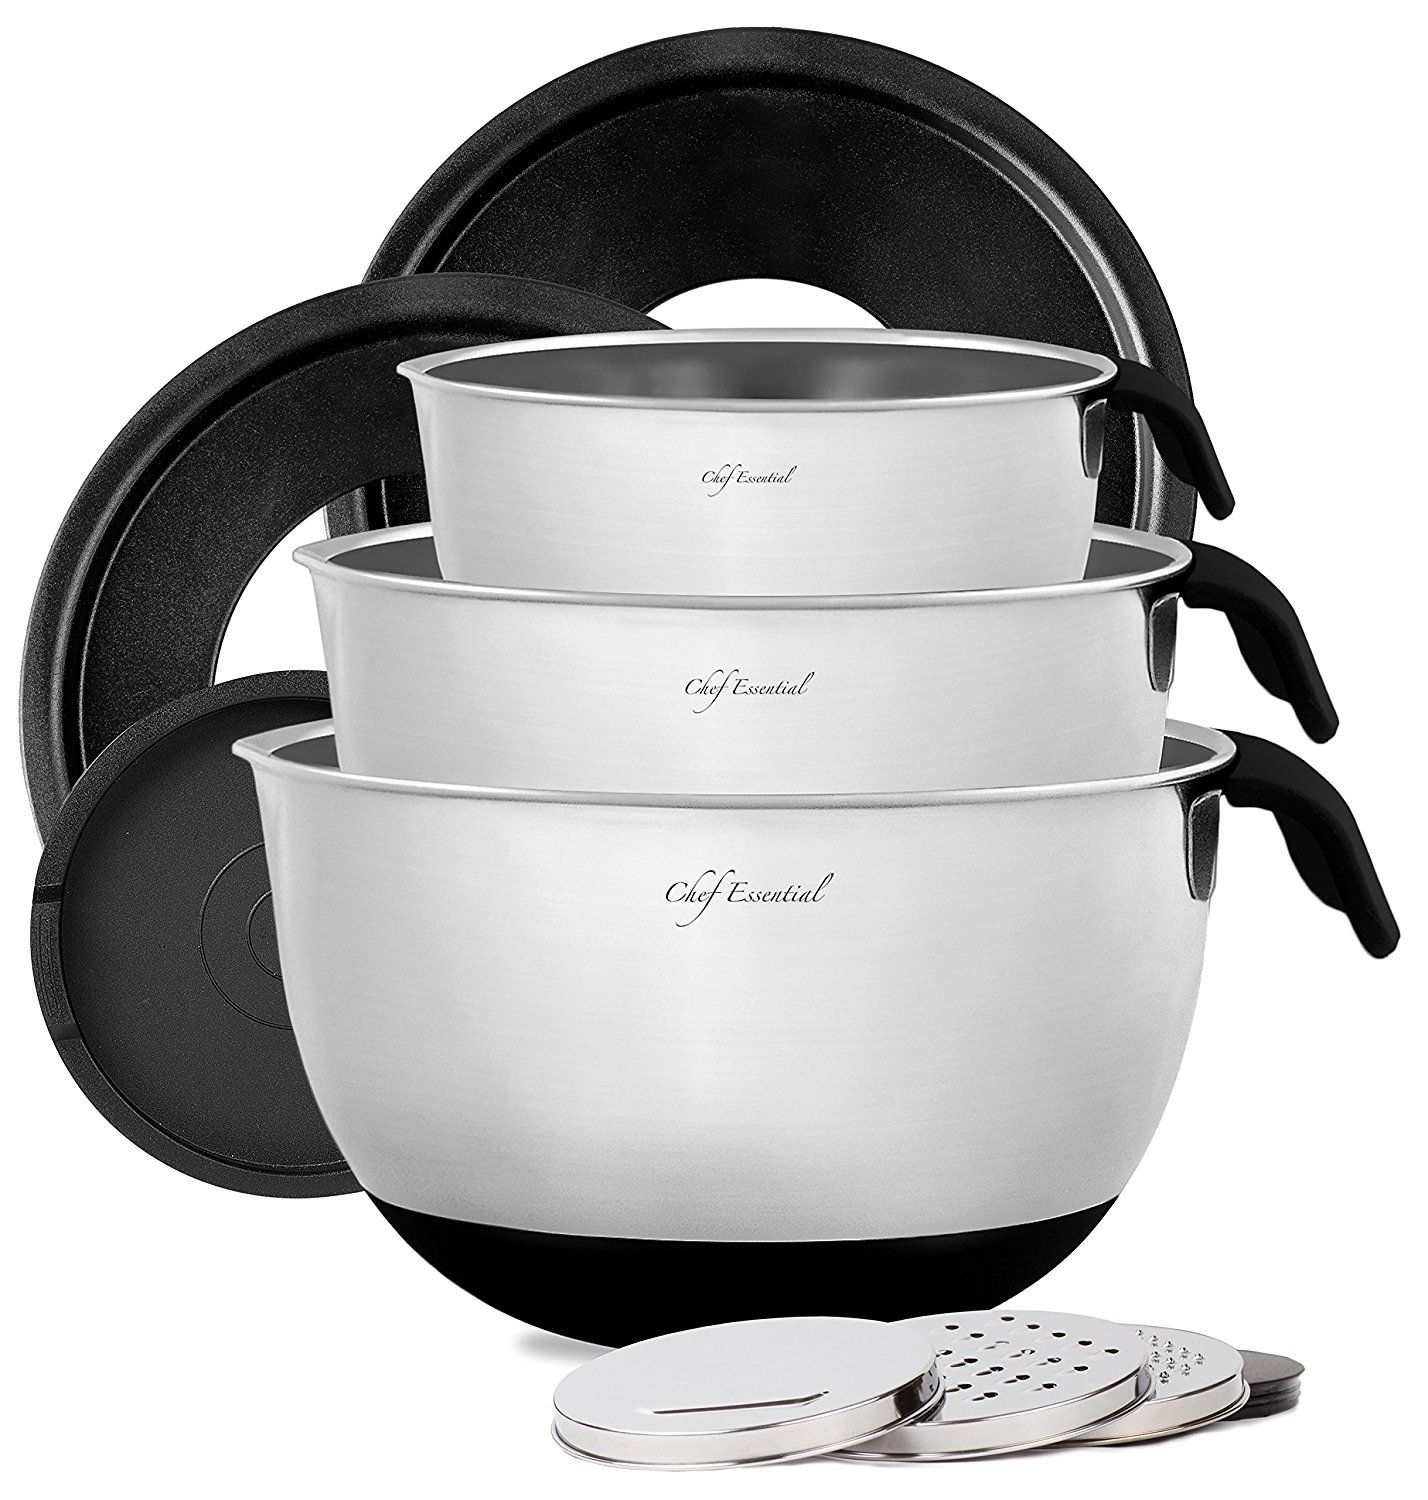 Chef Essential Stainless Steel Non Slip Mixing Bowls With Lids, Graters,